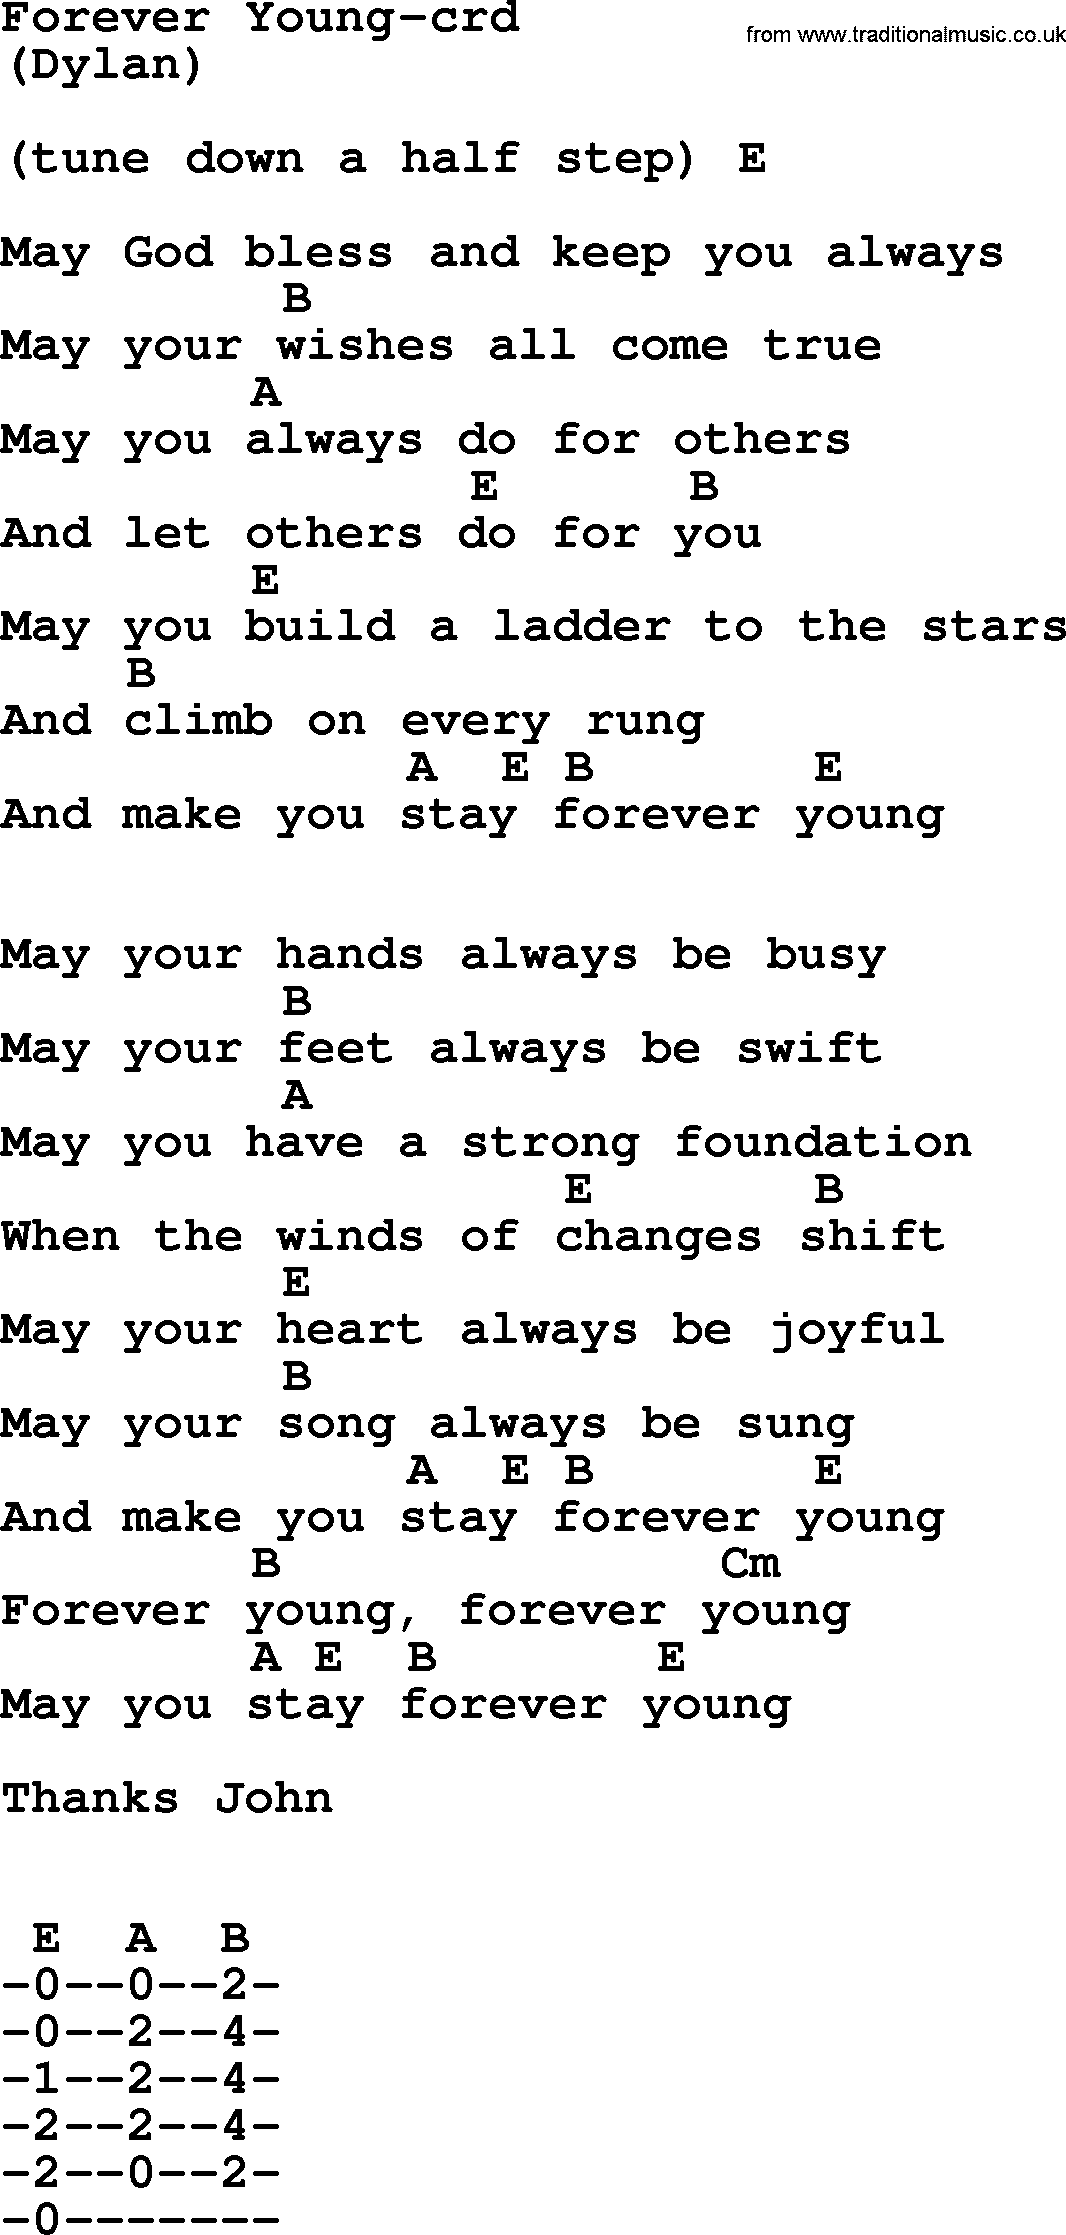 Bruce Springsteen song Forever Young, lyrics and chords